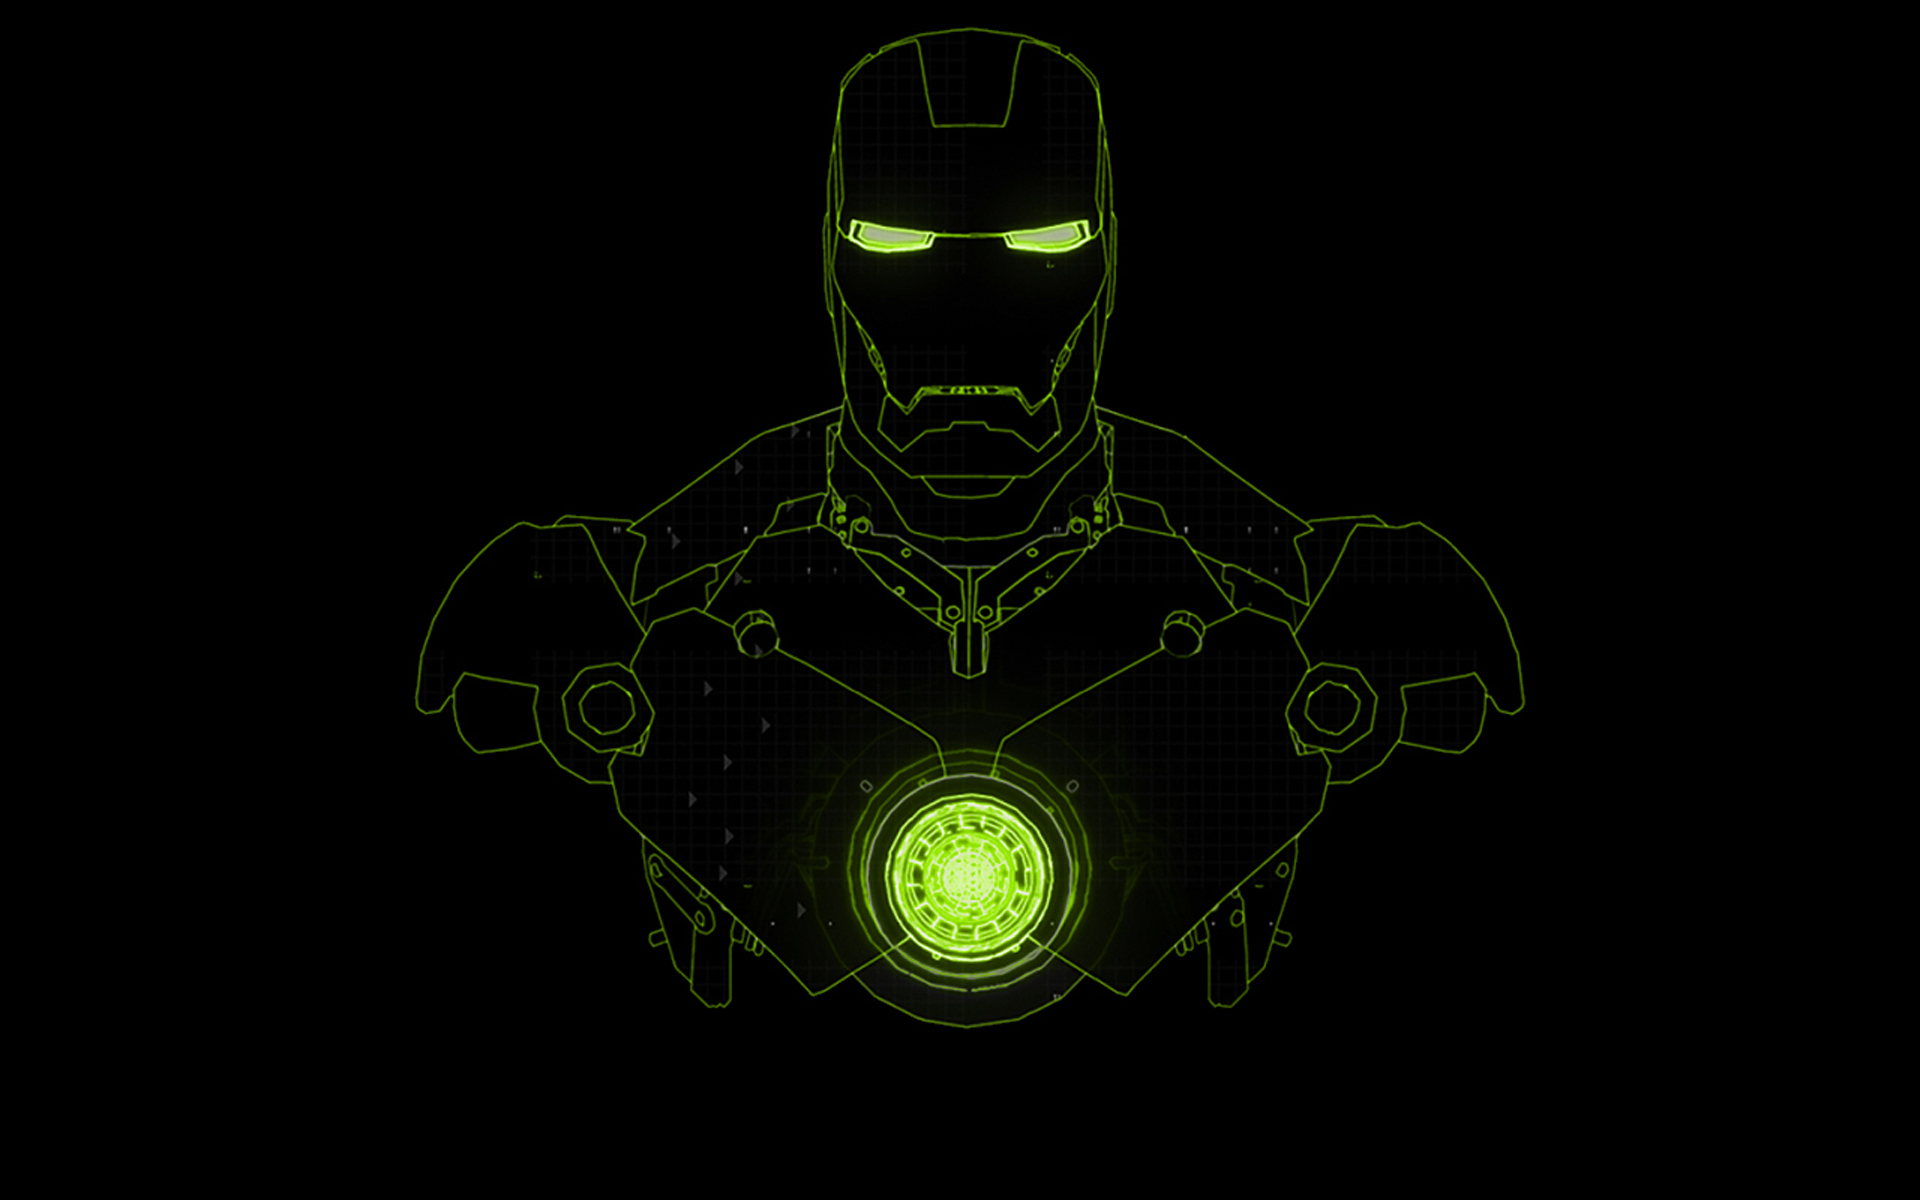 iron man wallpaper green